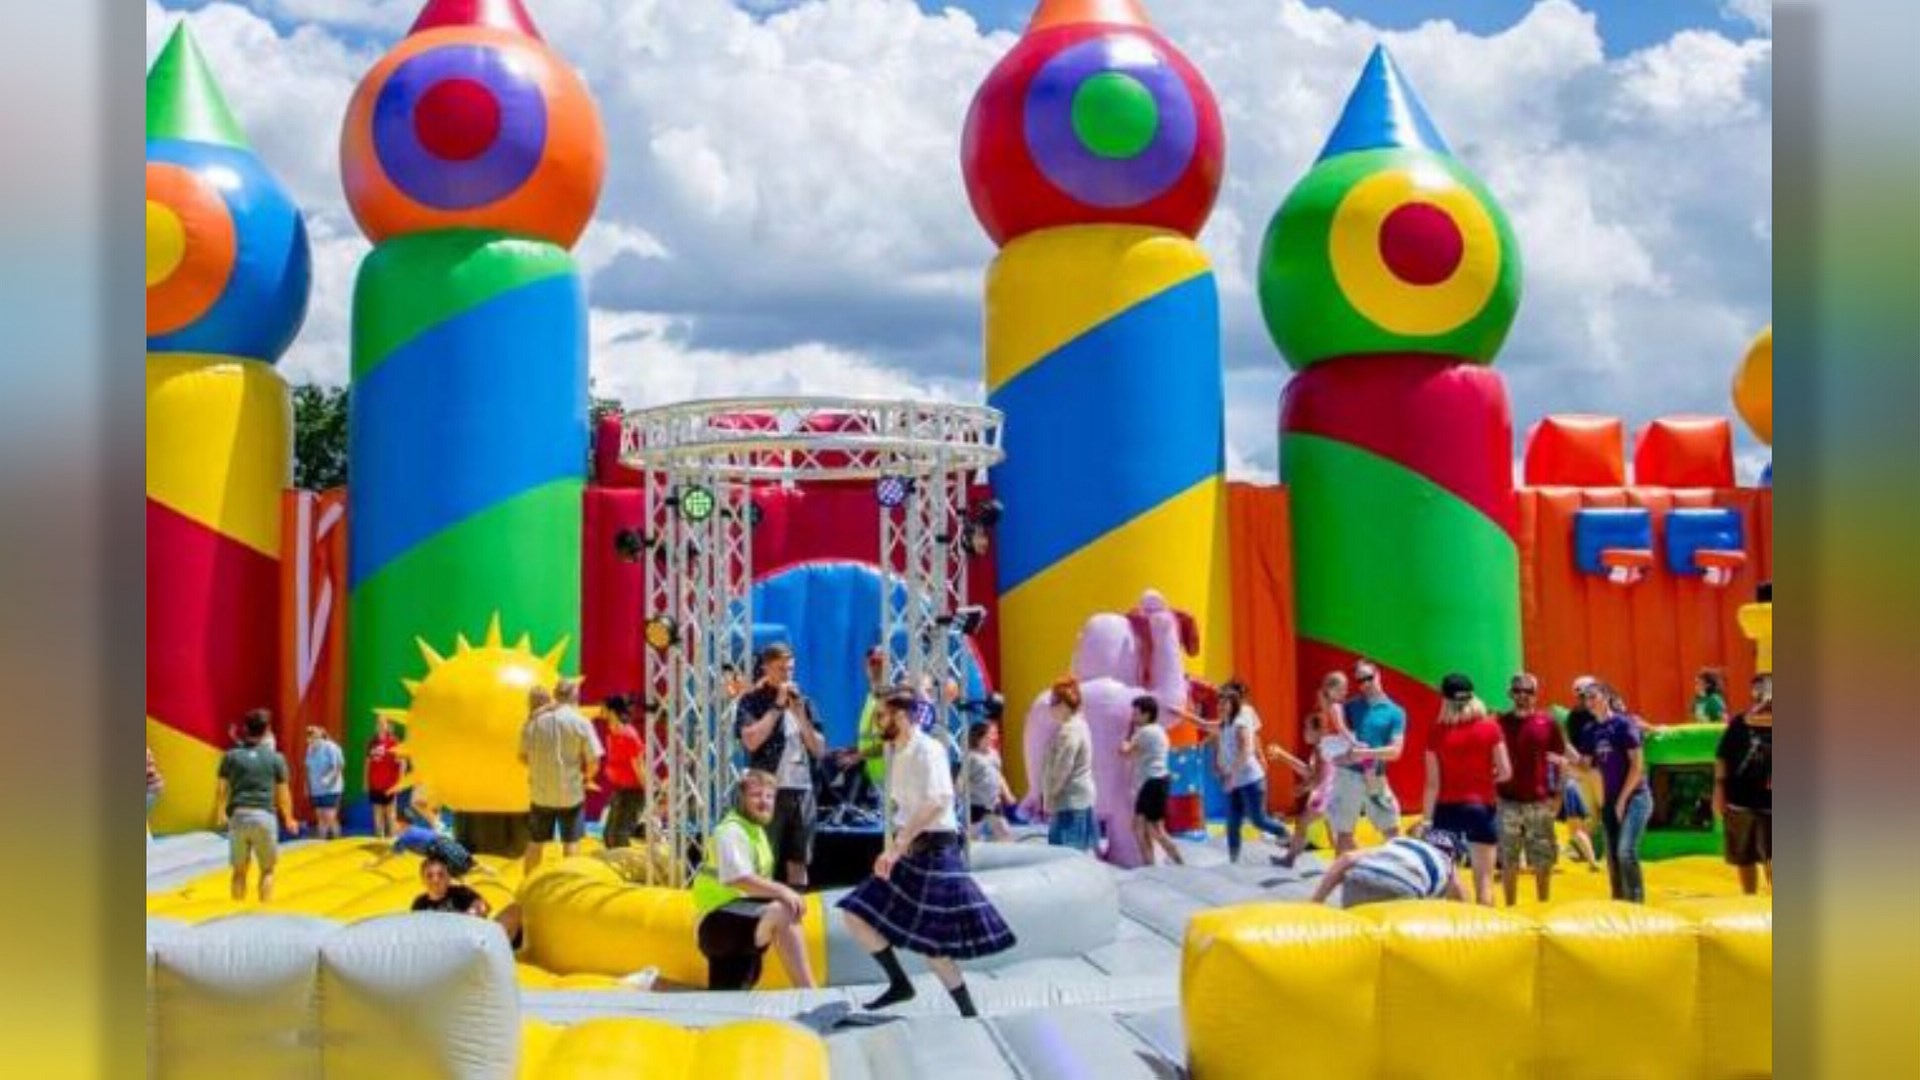 worlds biggest bounce house coming to houston in october khoucom - Biggest House In The World 2017